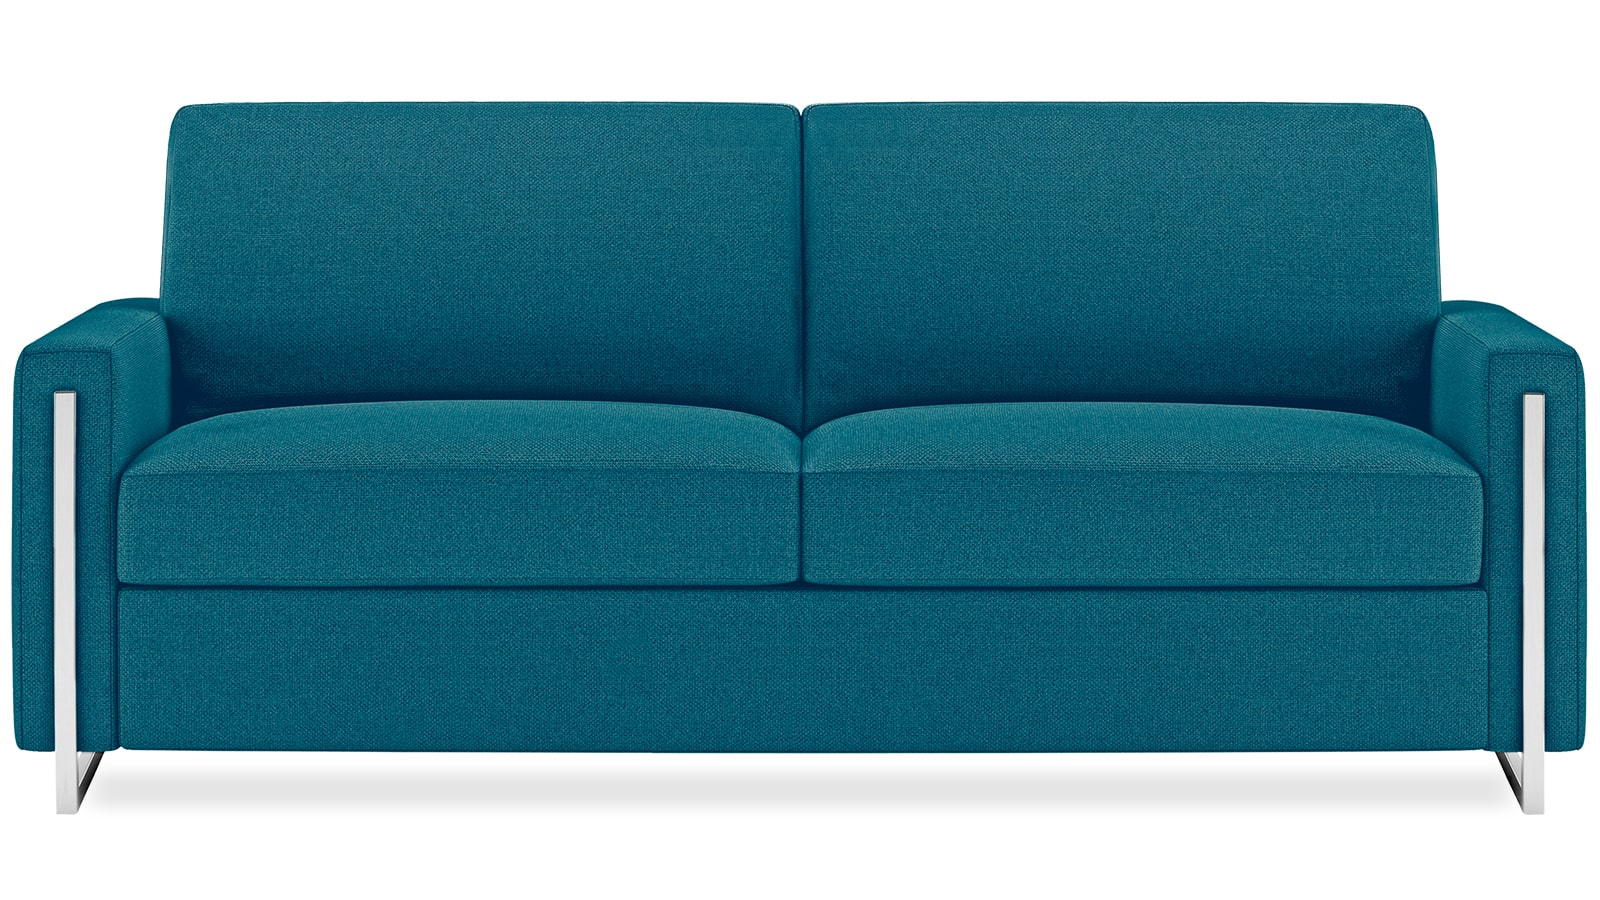 american leather sulley sleeper sofa